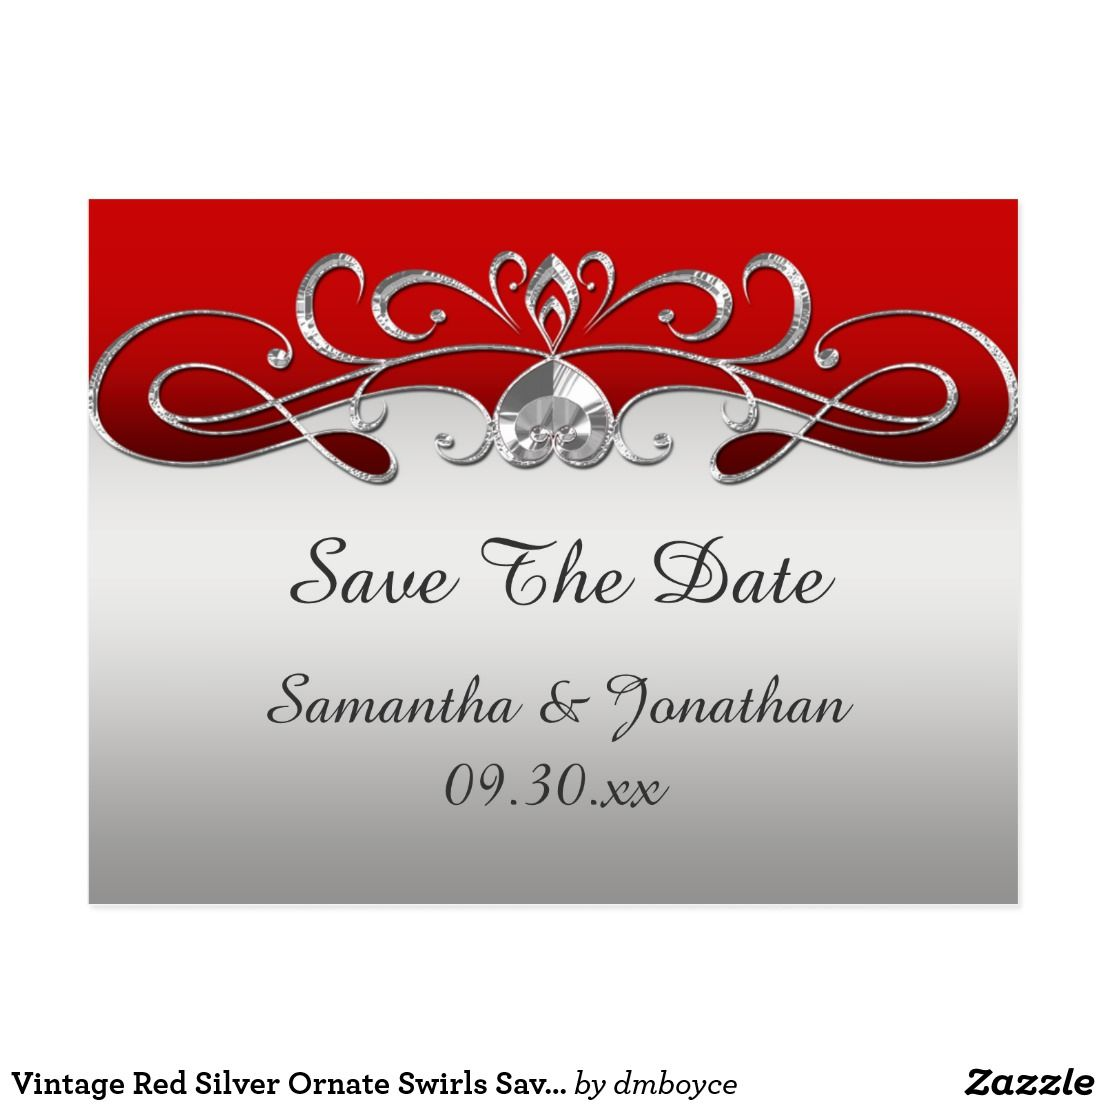 Vintage Red Silver Ornate Swirls Save The Date Postcard | Weddings